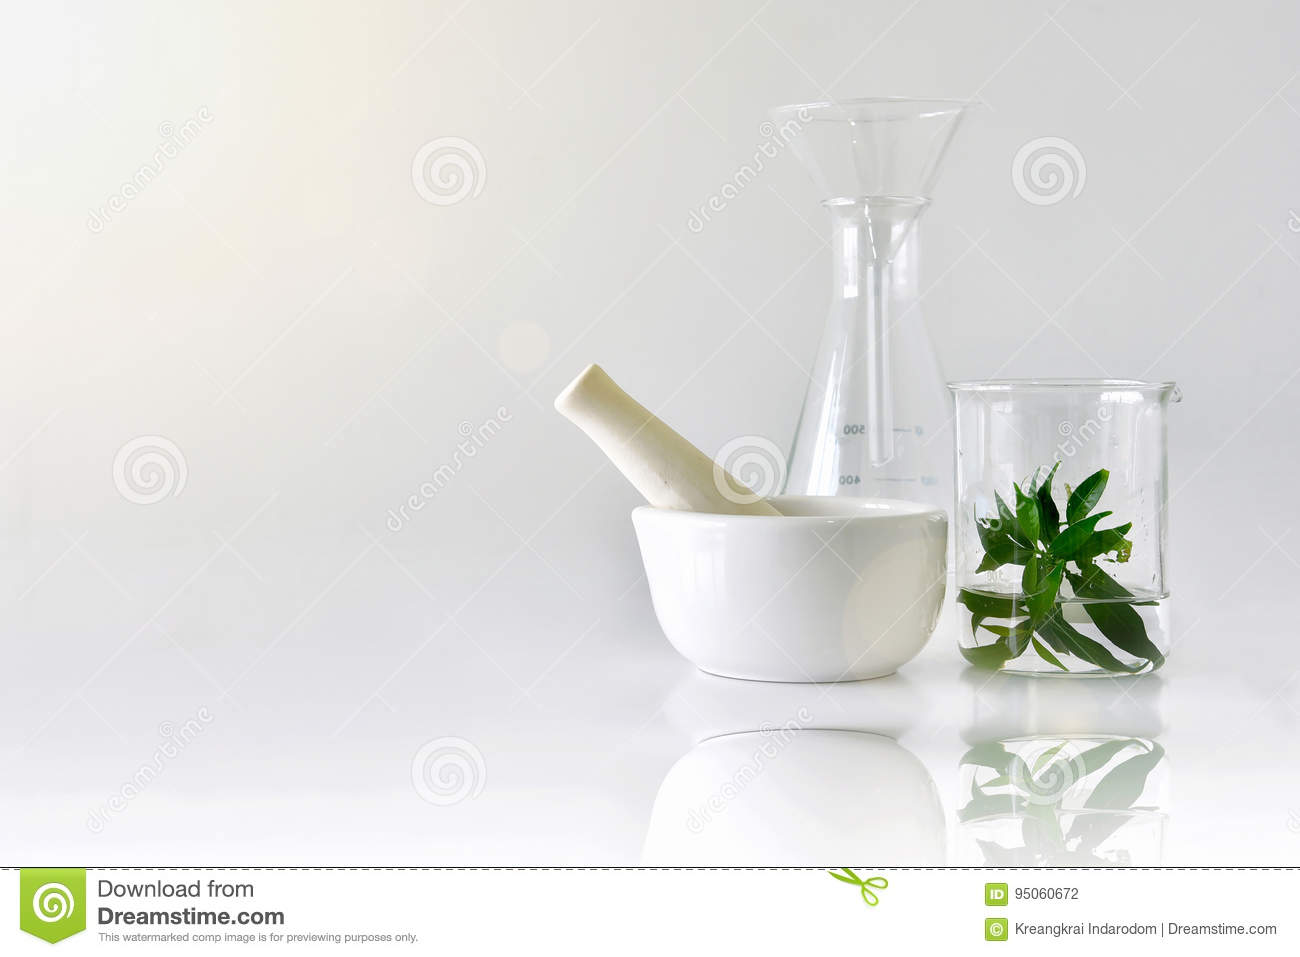 Natural organic botany and scientific glassware, Alternative herb medicine, Natural skin care beauty products.